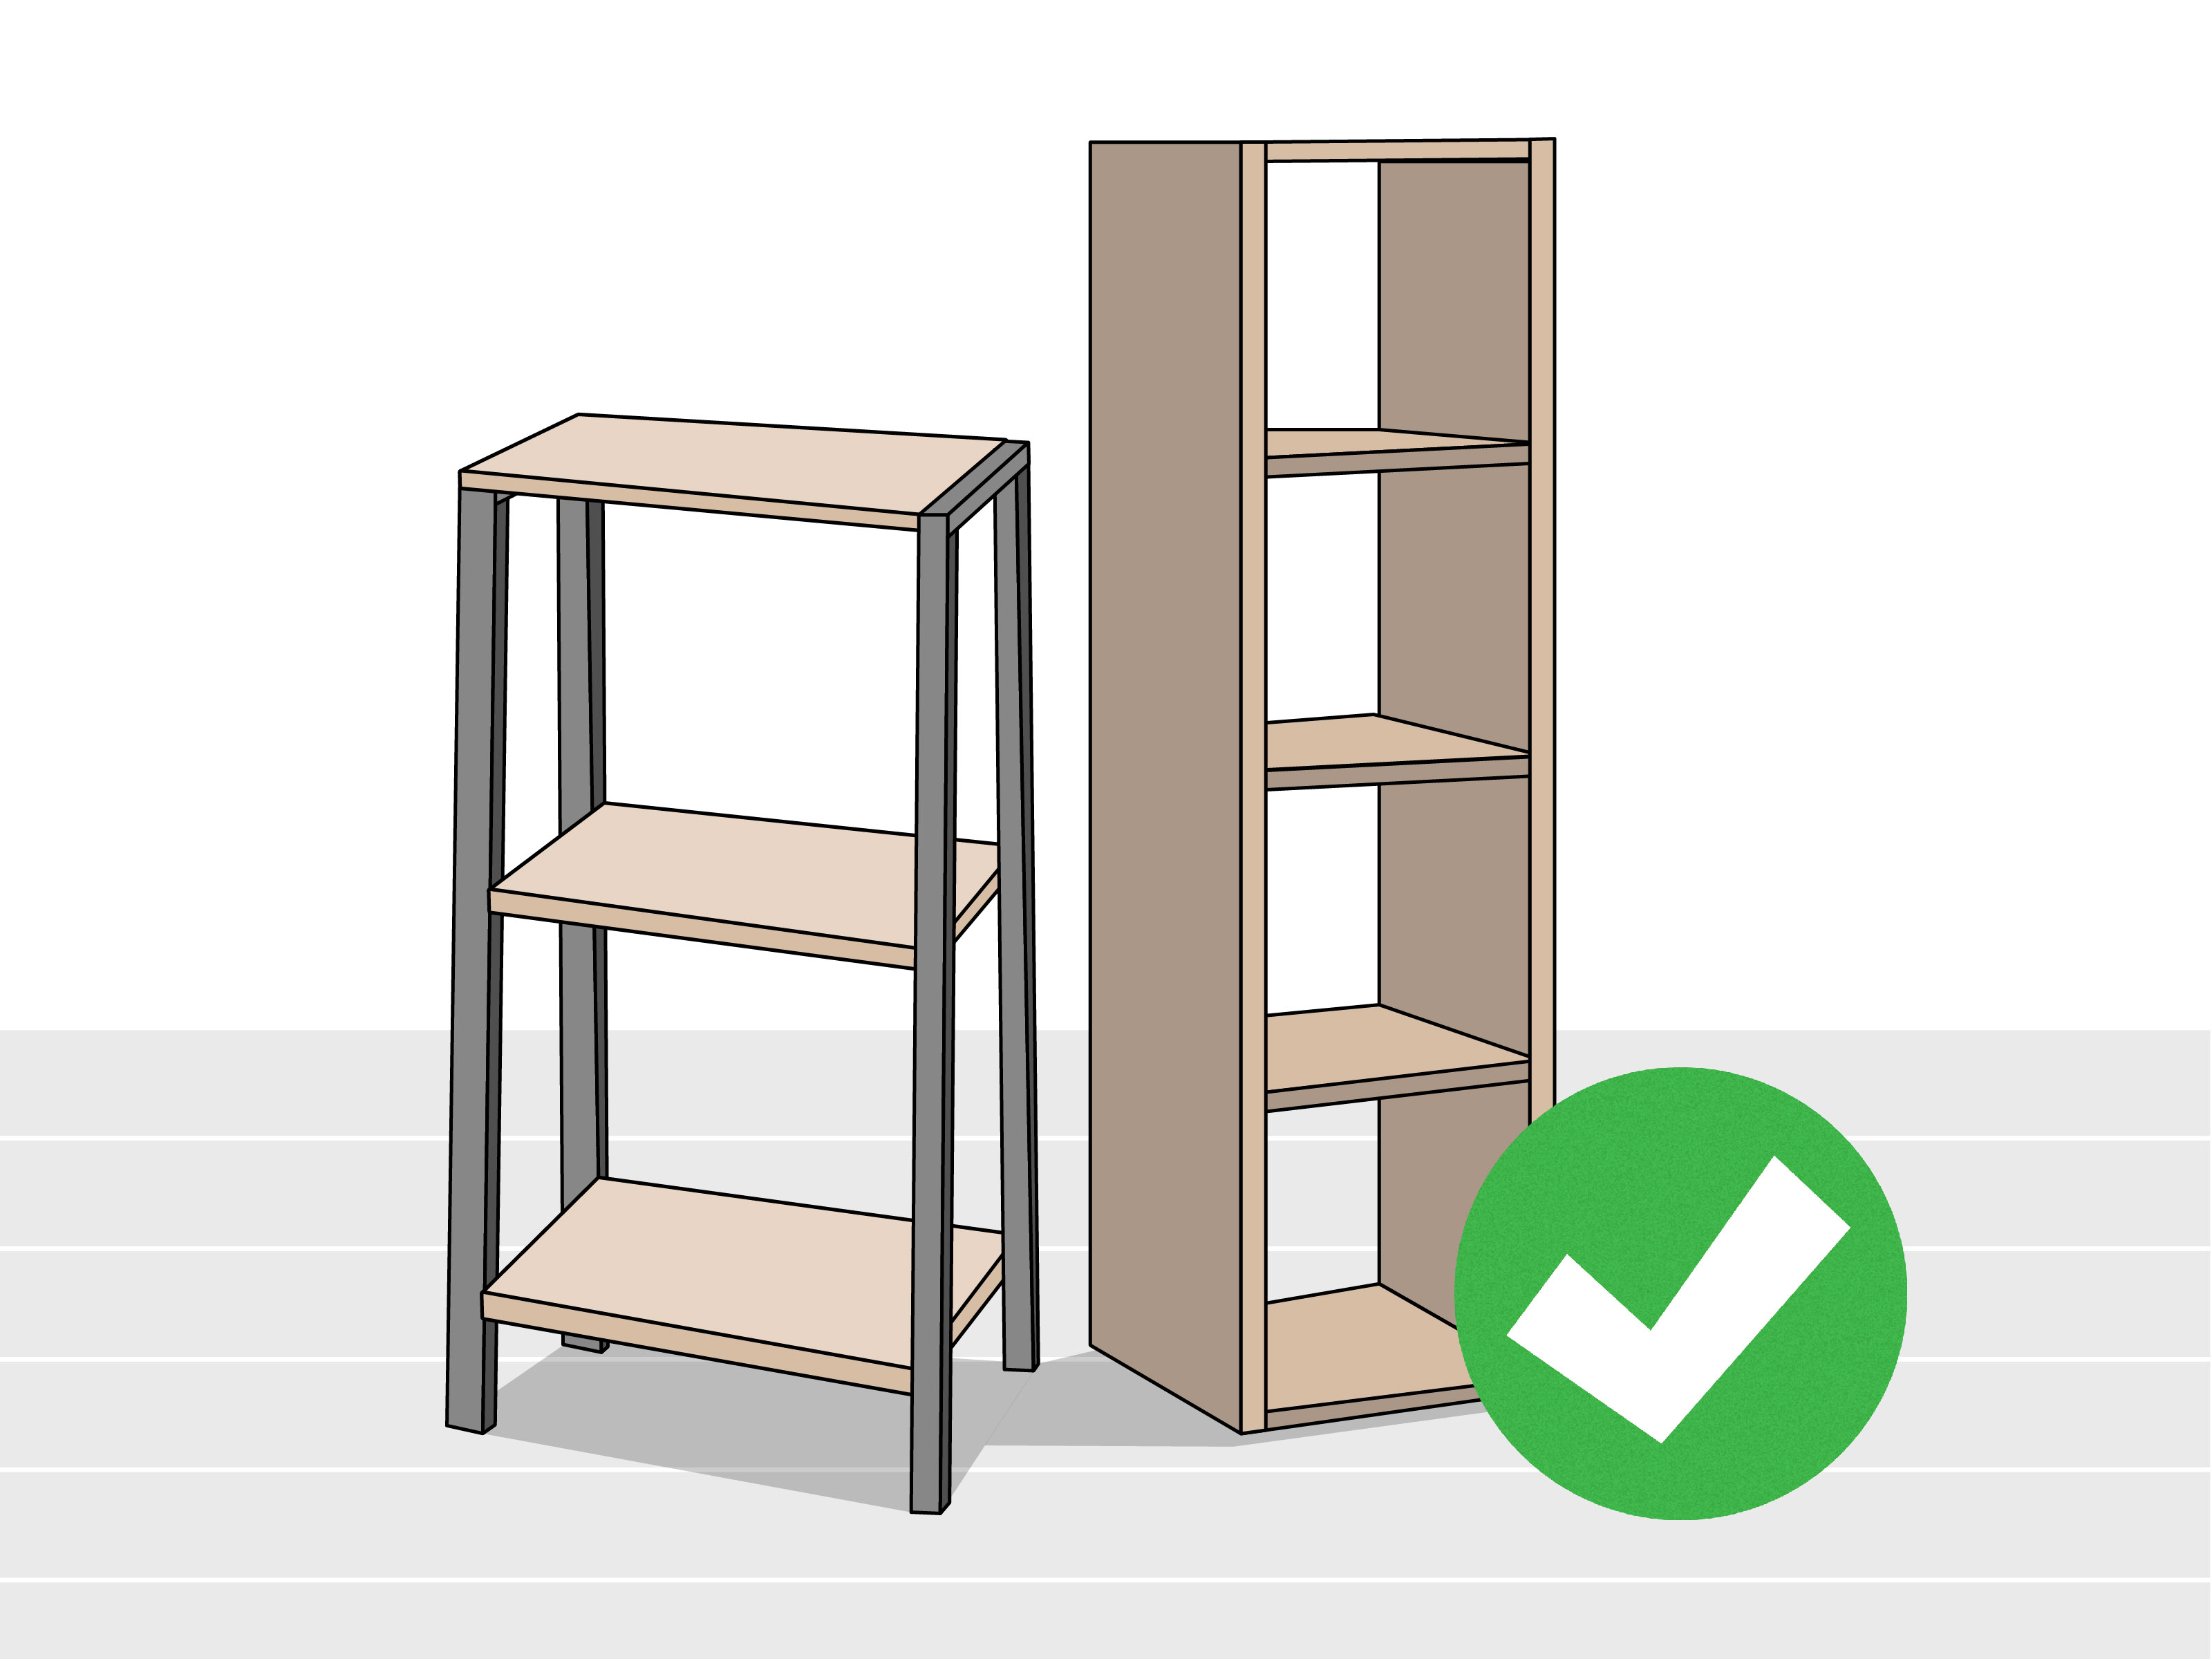 how hang shelves without nails steps with tures step floating screws nice computer desks for home vintage corner wall shelf small space bathroom ideas hanging storage real wood